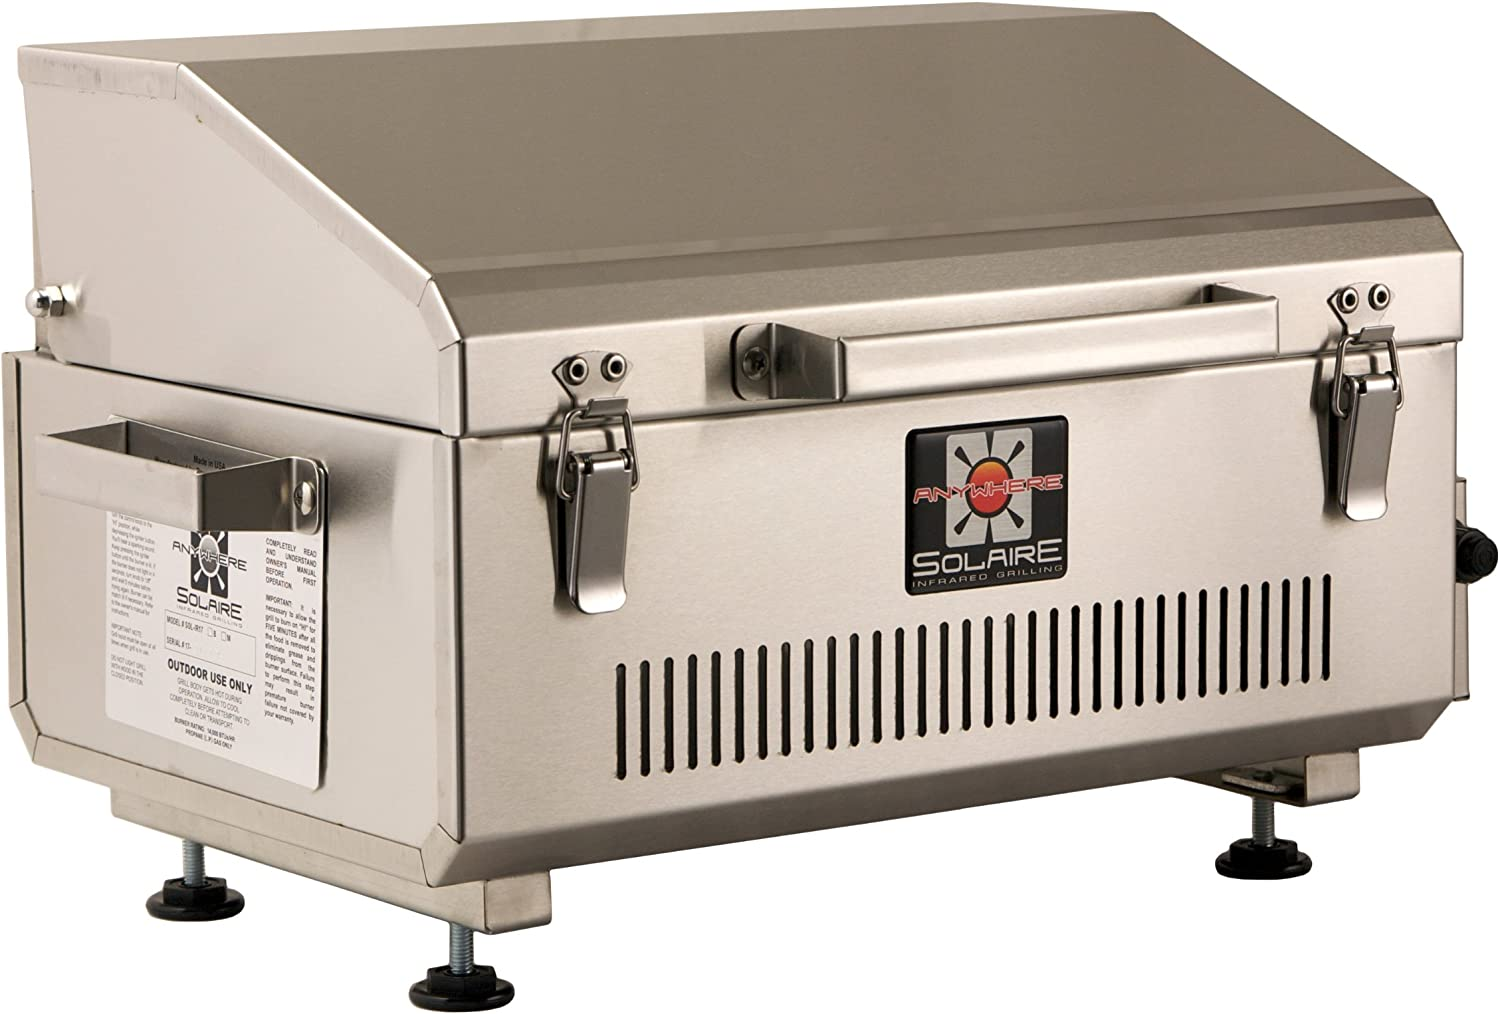 New Sunco 390mm x 485mm Stainless Steel Grill